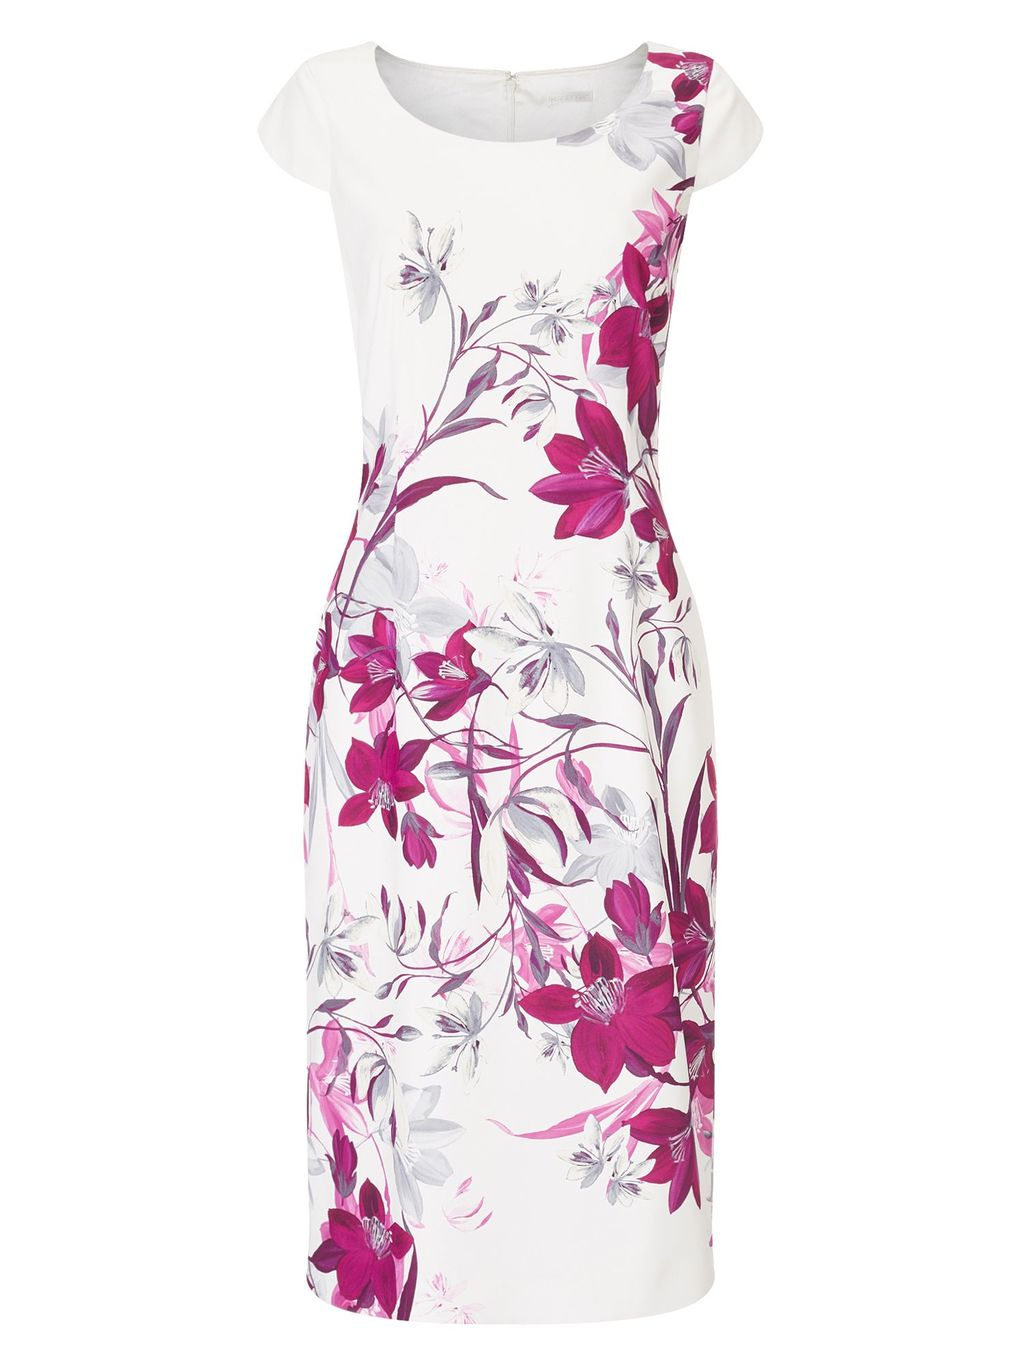 Bali Floral Print Dress, Multi Coloured - style: shift; neckline: round neck; sleeve style: capped; fit: tailored/fitted; predominant colour: ivory/cream; secondary colour: hot pink; occasions: evening; length: on the knee; fibres: polyester/polyamide - 100%; sleeve length: short sleeve; pattern type: fabric; pattern: florals; texture group: other - light to midweight; season: s/s 2016; wardrobe: event